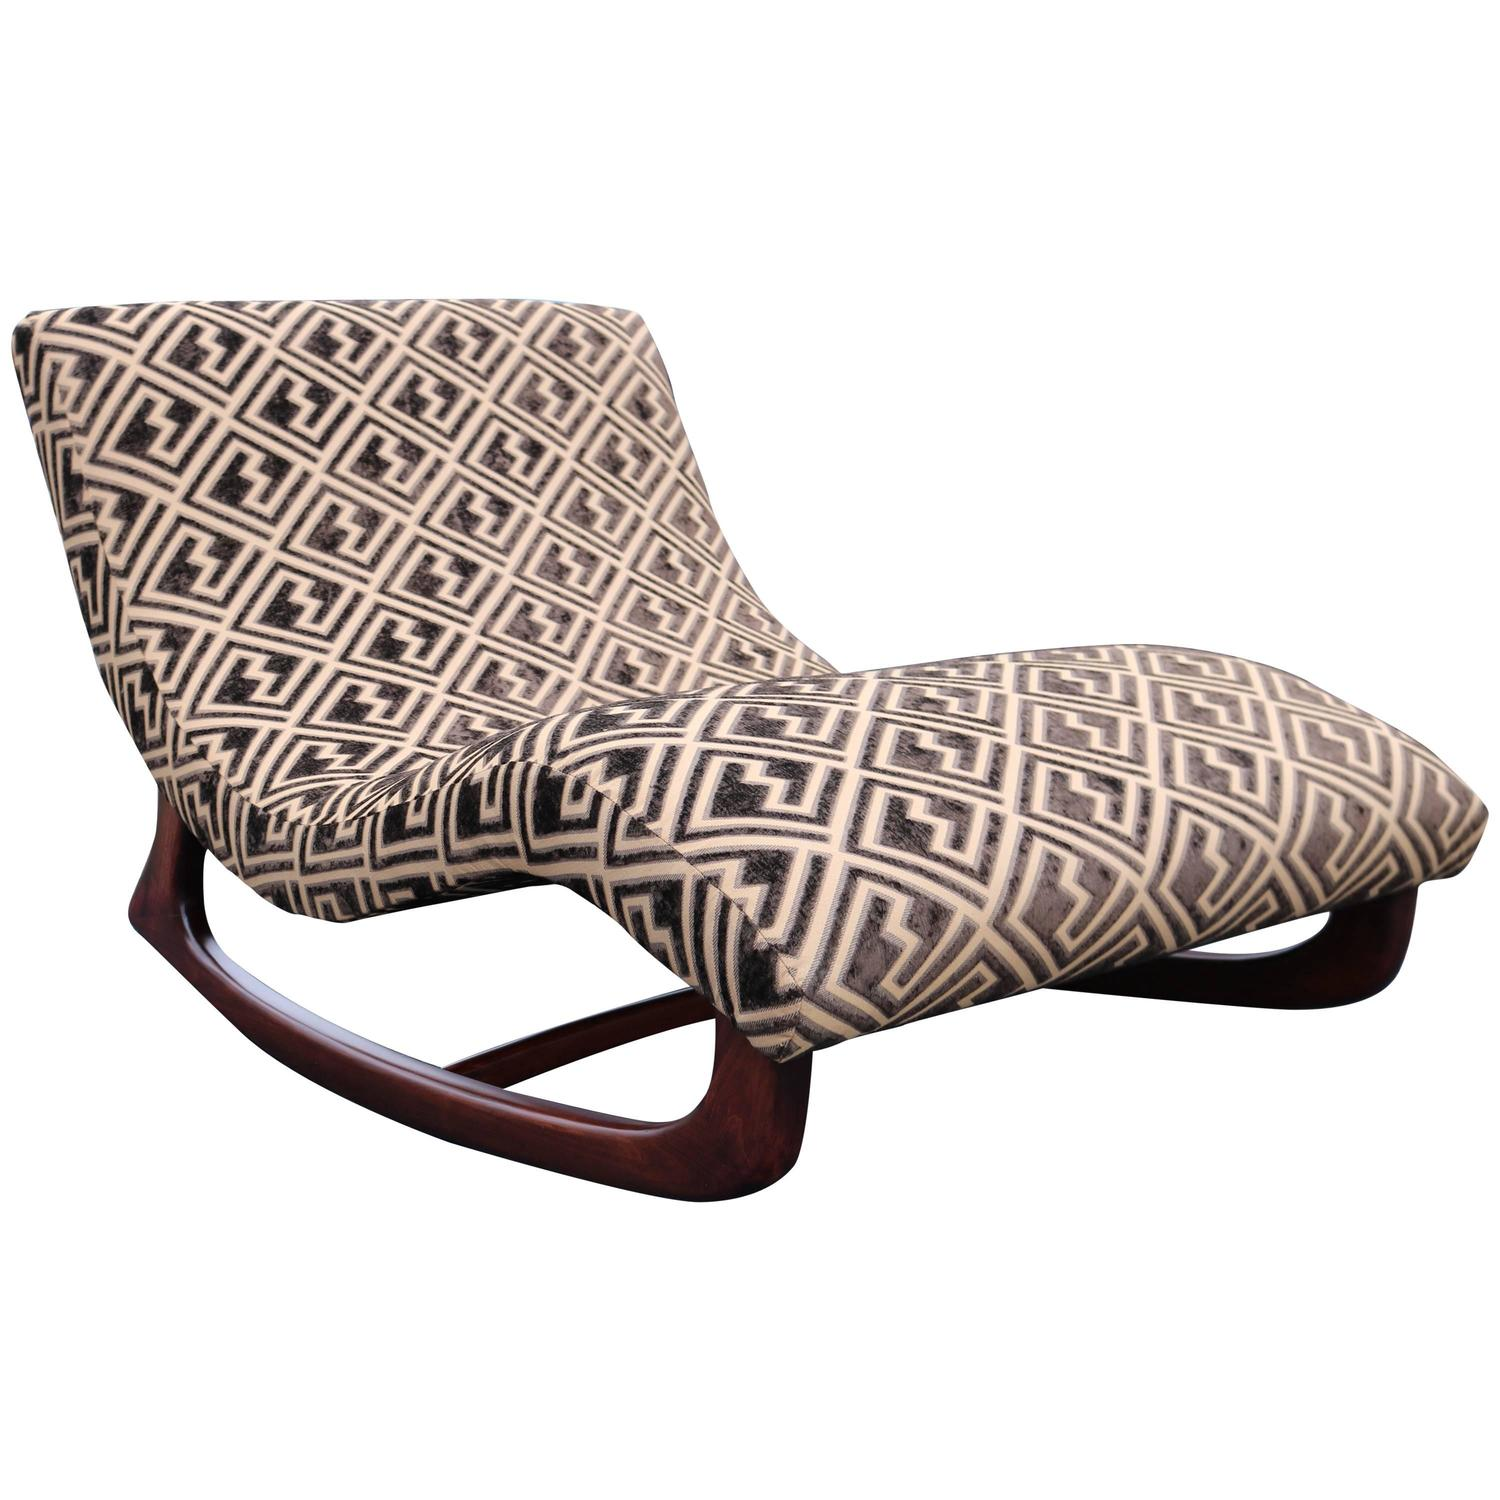 adrian pearsall wave rocking chair chaise in walnut base and cut velvet at 1stdibs. Black Bedroom Furniture Sets. Home Design Ideas